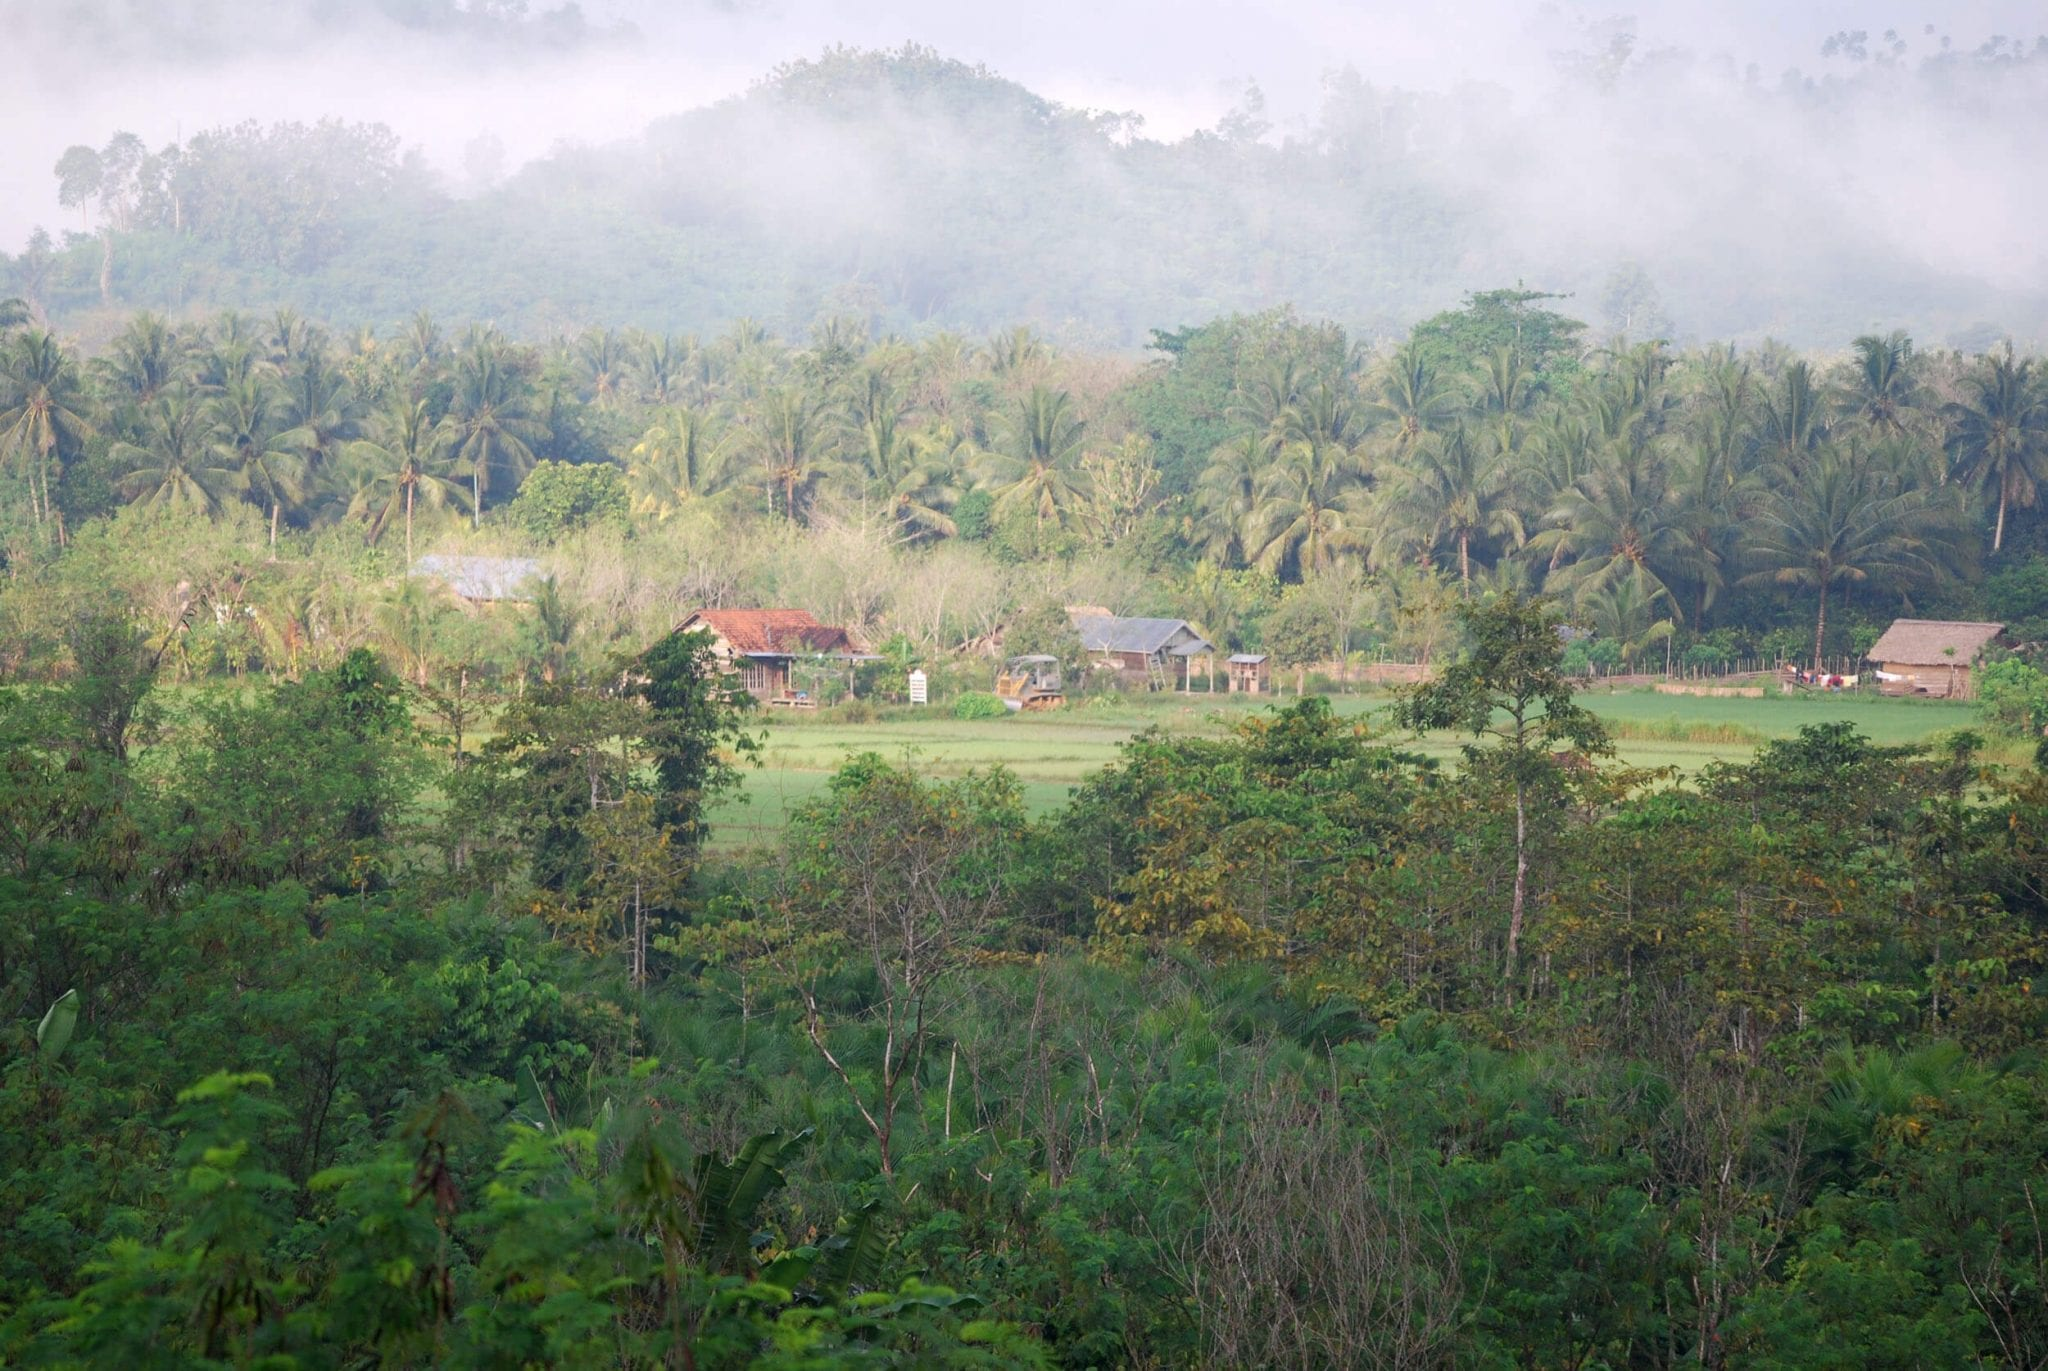 Makartijaya village/ Dorf mitten im Wald - Photo by Burung Indonesia